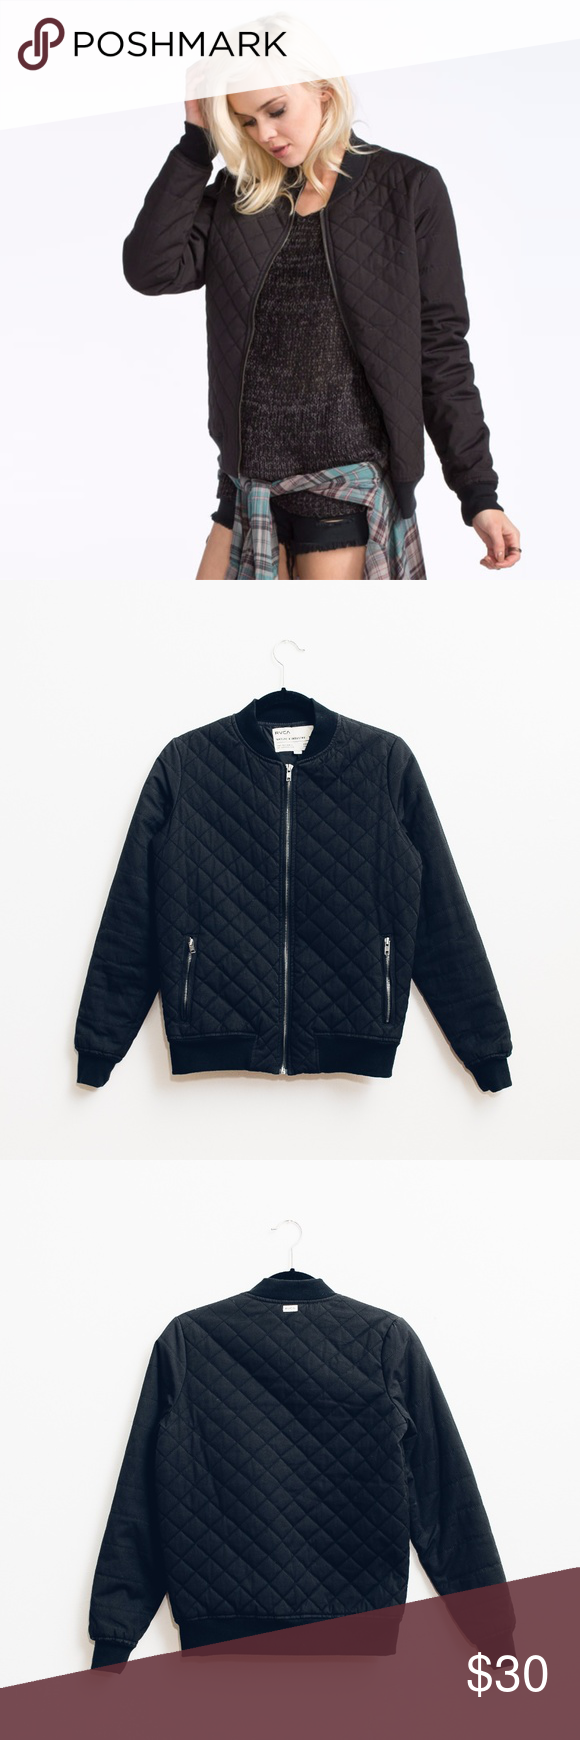 ff454b3c28f RVCA WOMEN S MASON QUILTED BOMBER JACKET Quilted bomber jacket from RVCA.  Size XS